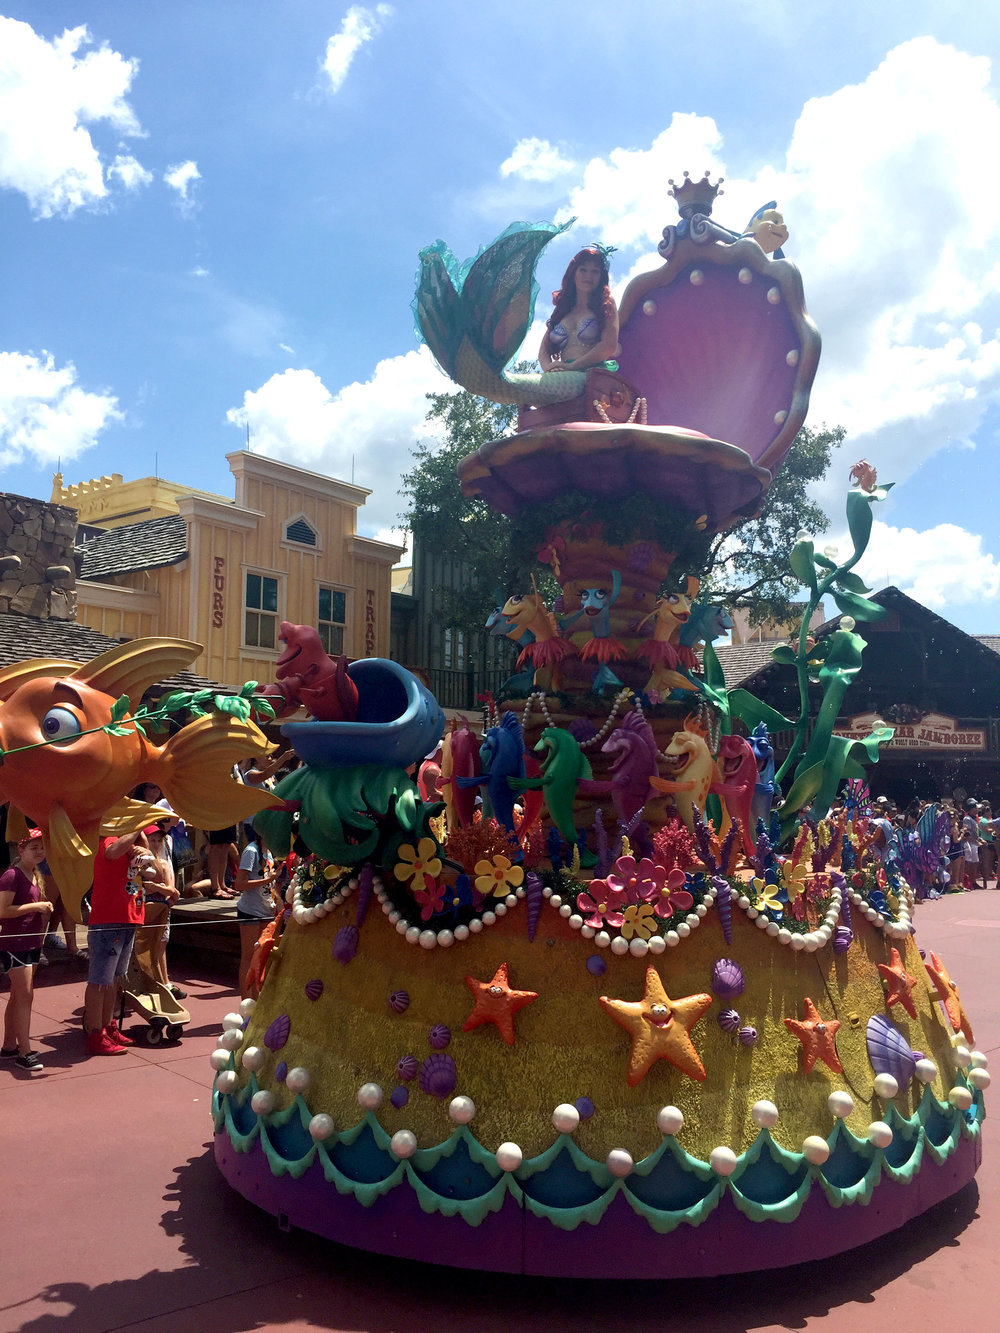 Ariel's float is so colorful and I loved that they got the conga fish to move in the exact same way that they do in the movie!